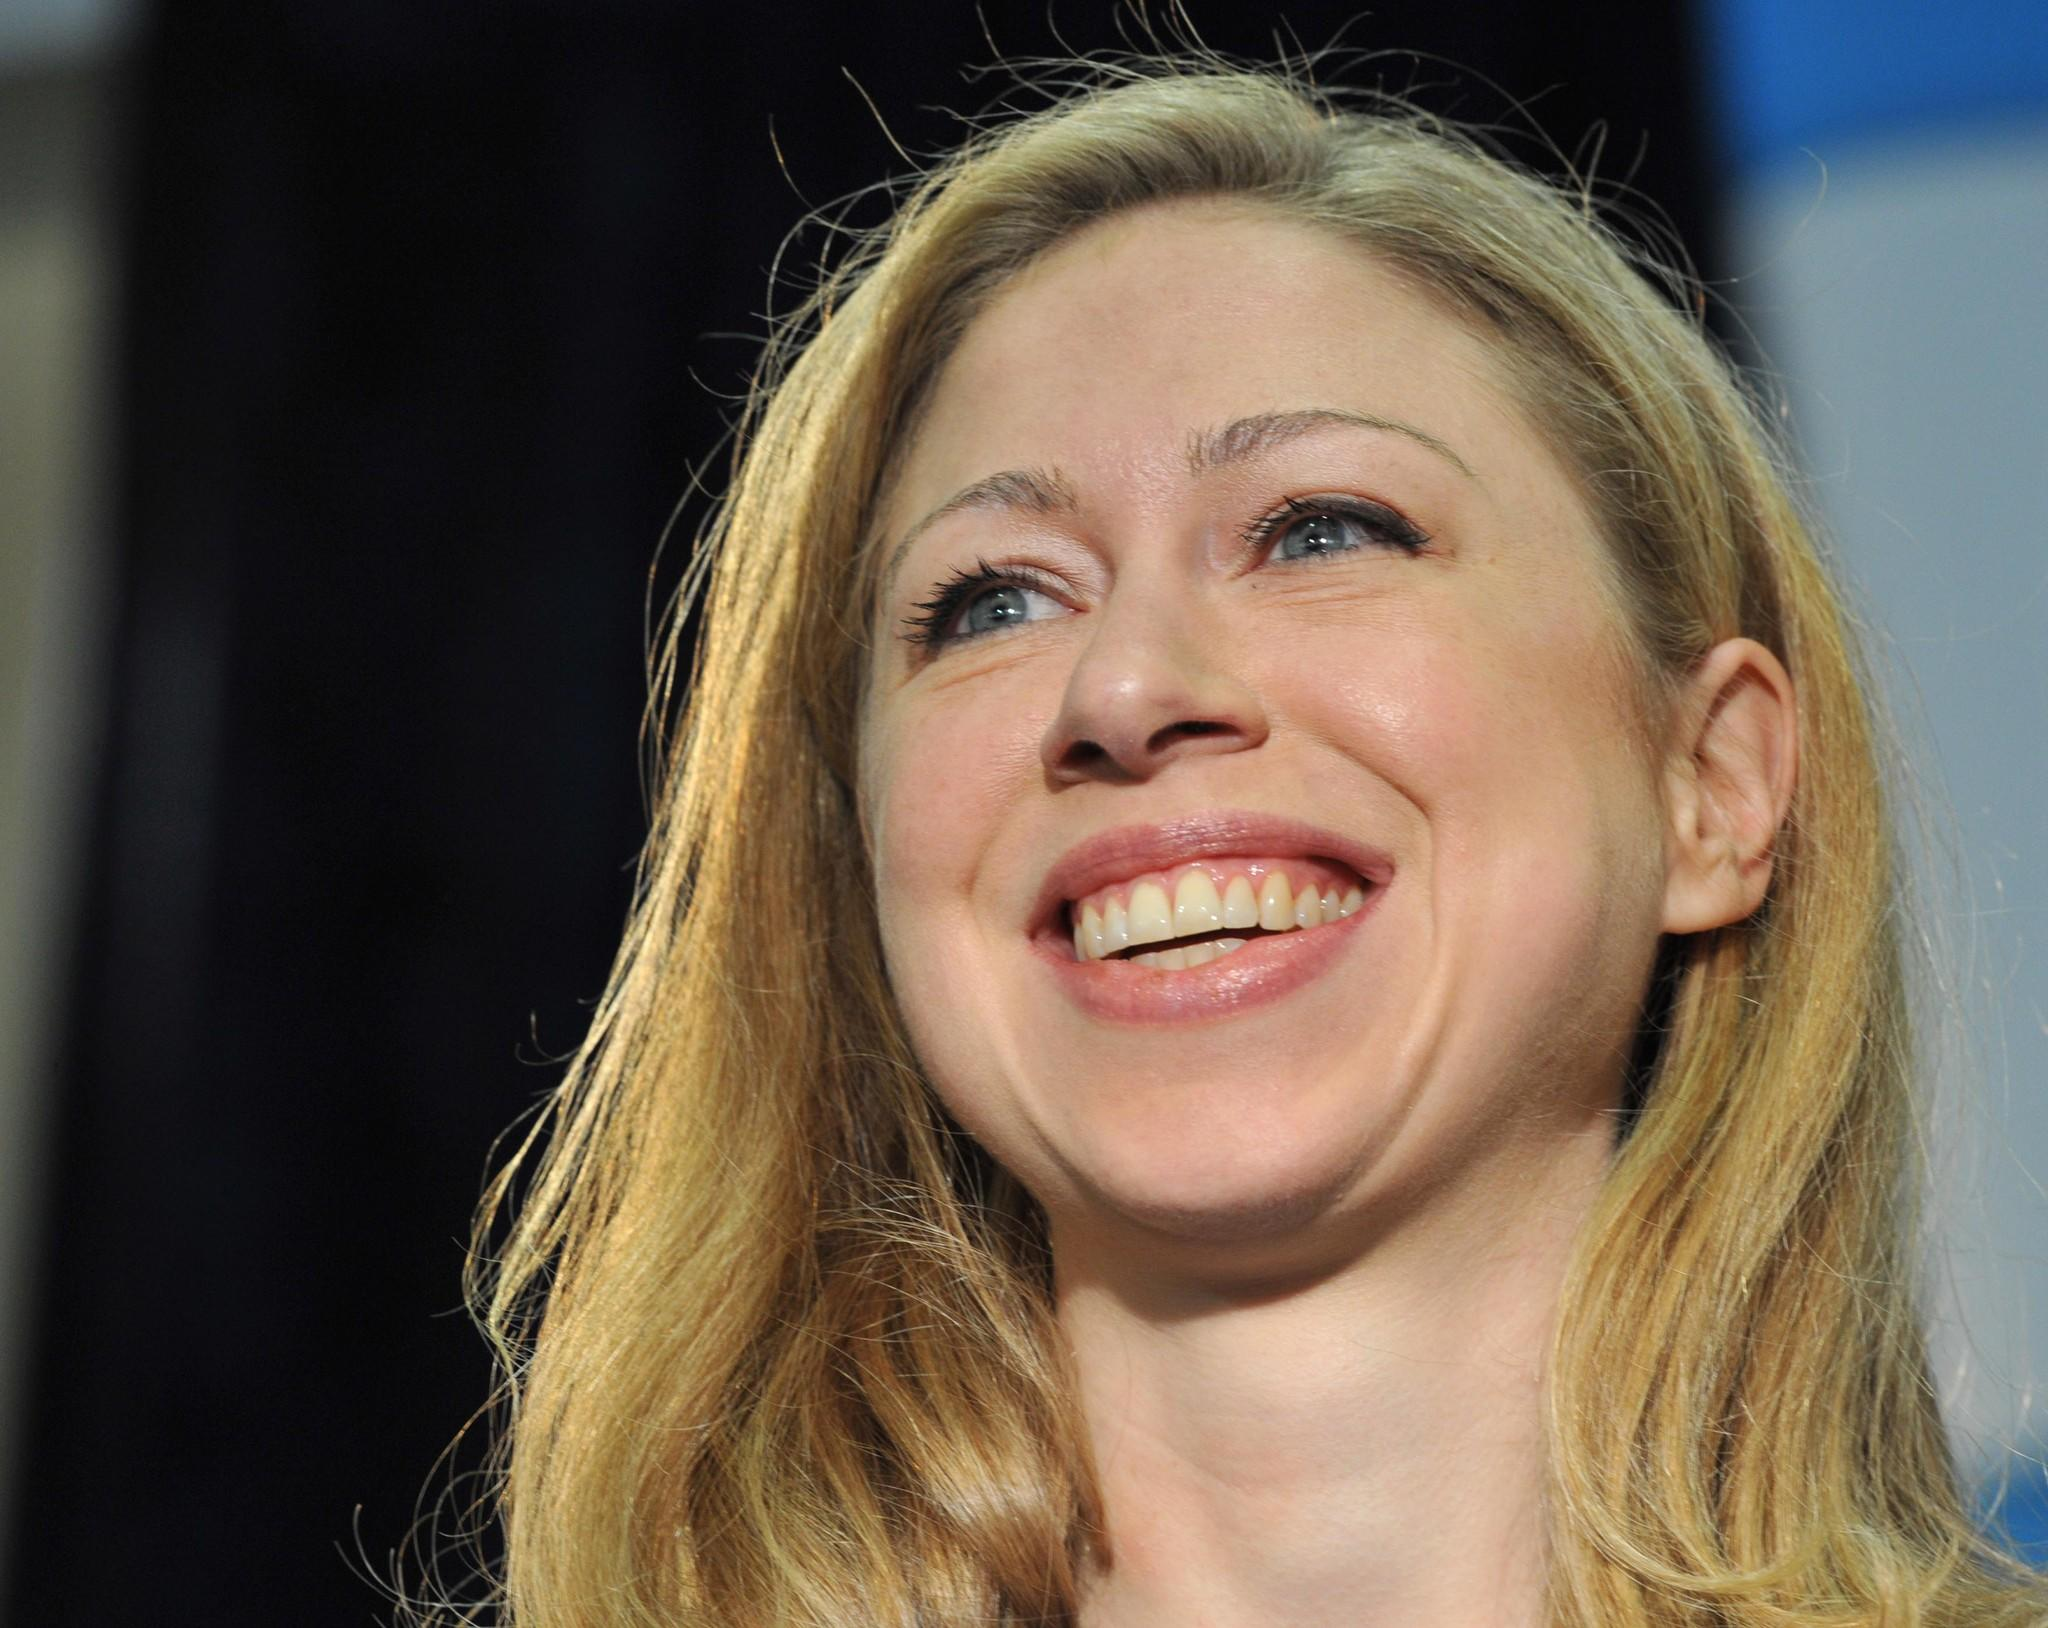 Chelsea Clinton earned $600,000 per year as a correspondent for NBC.